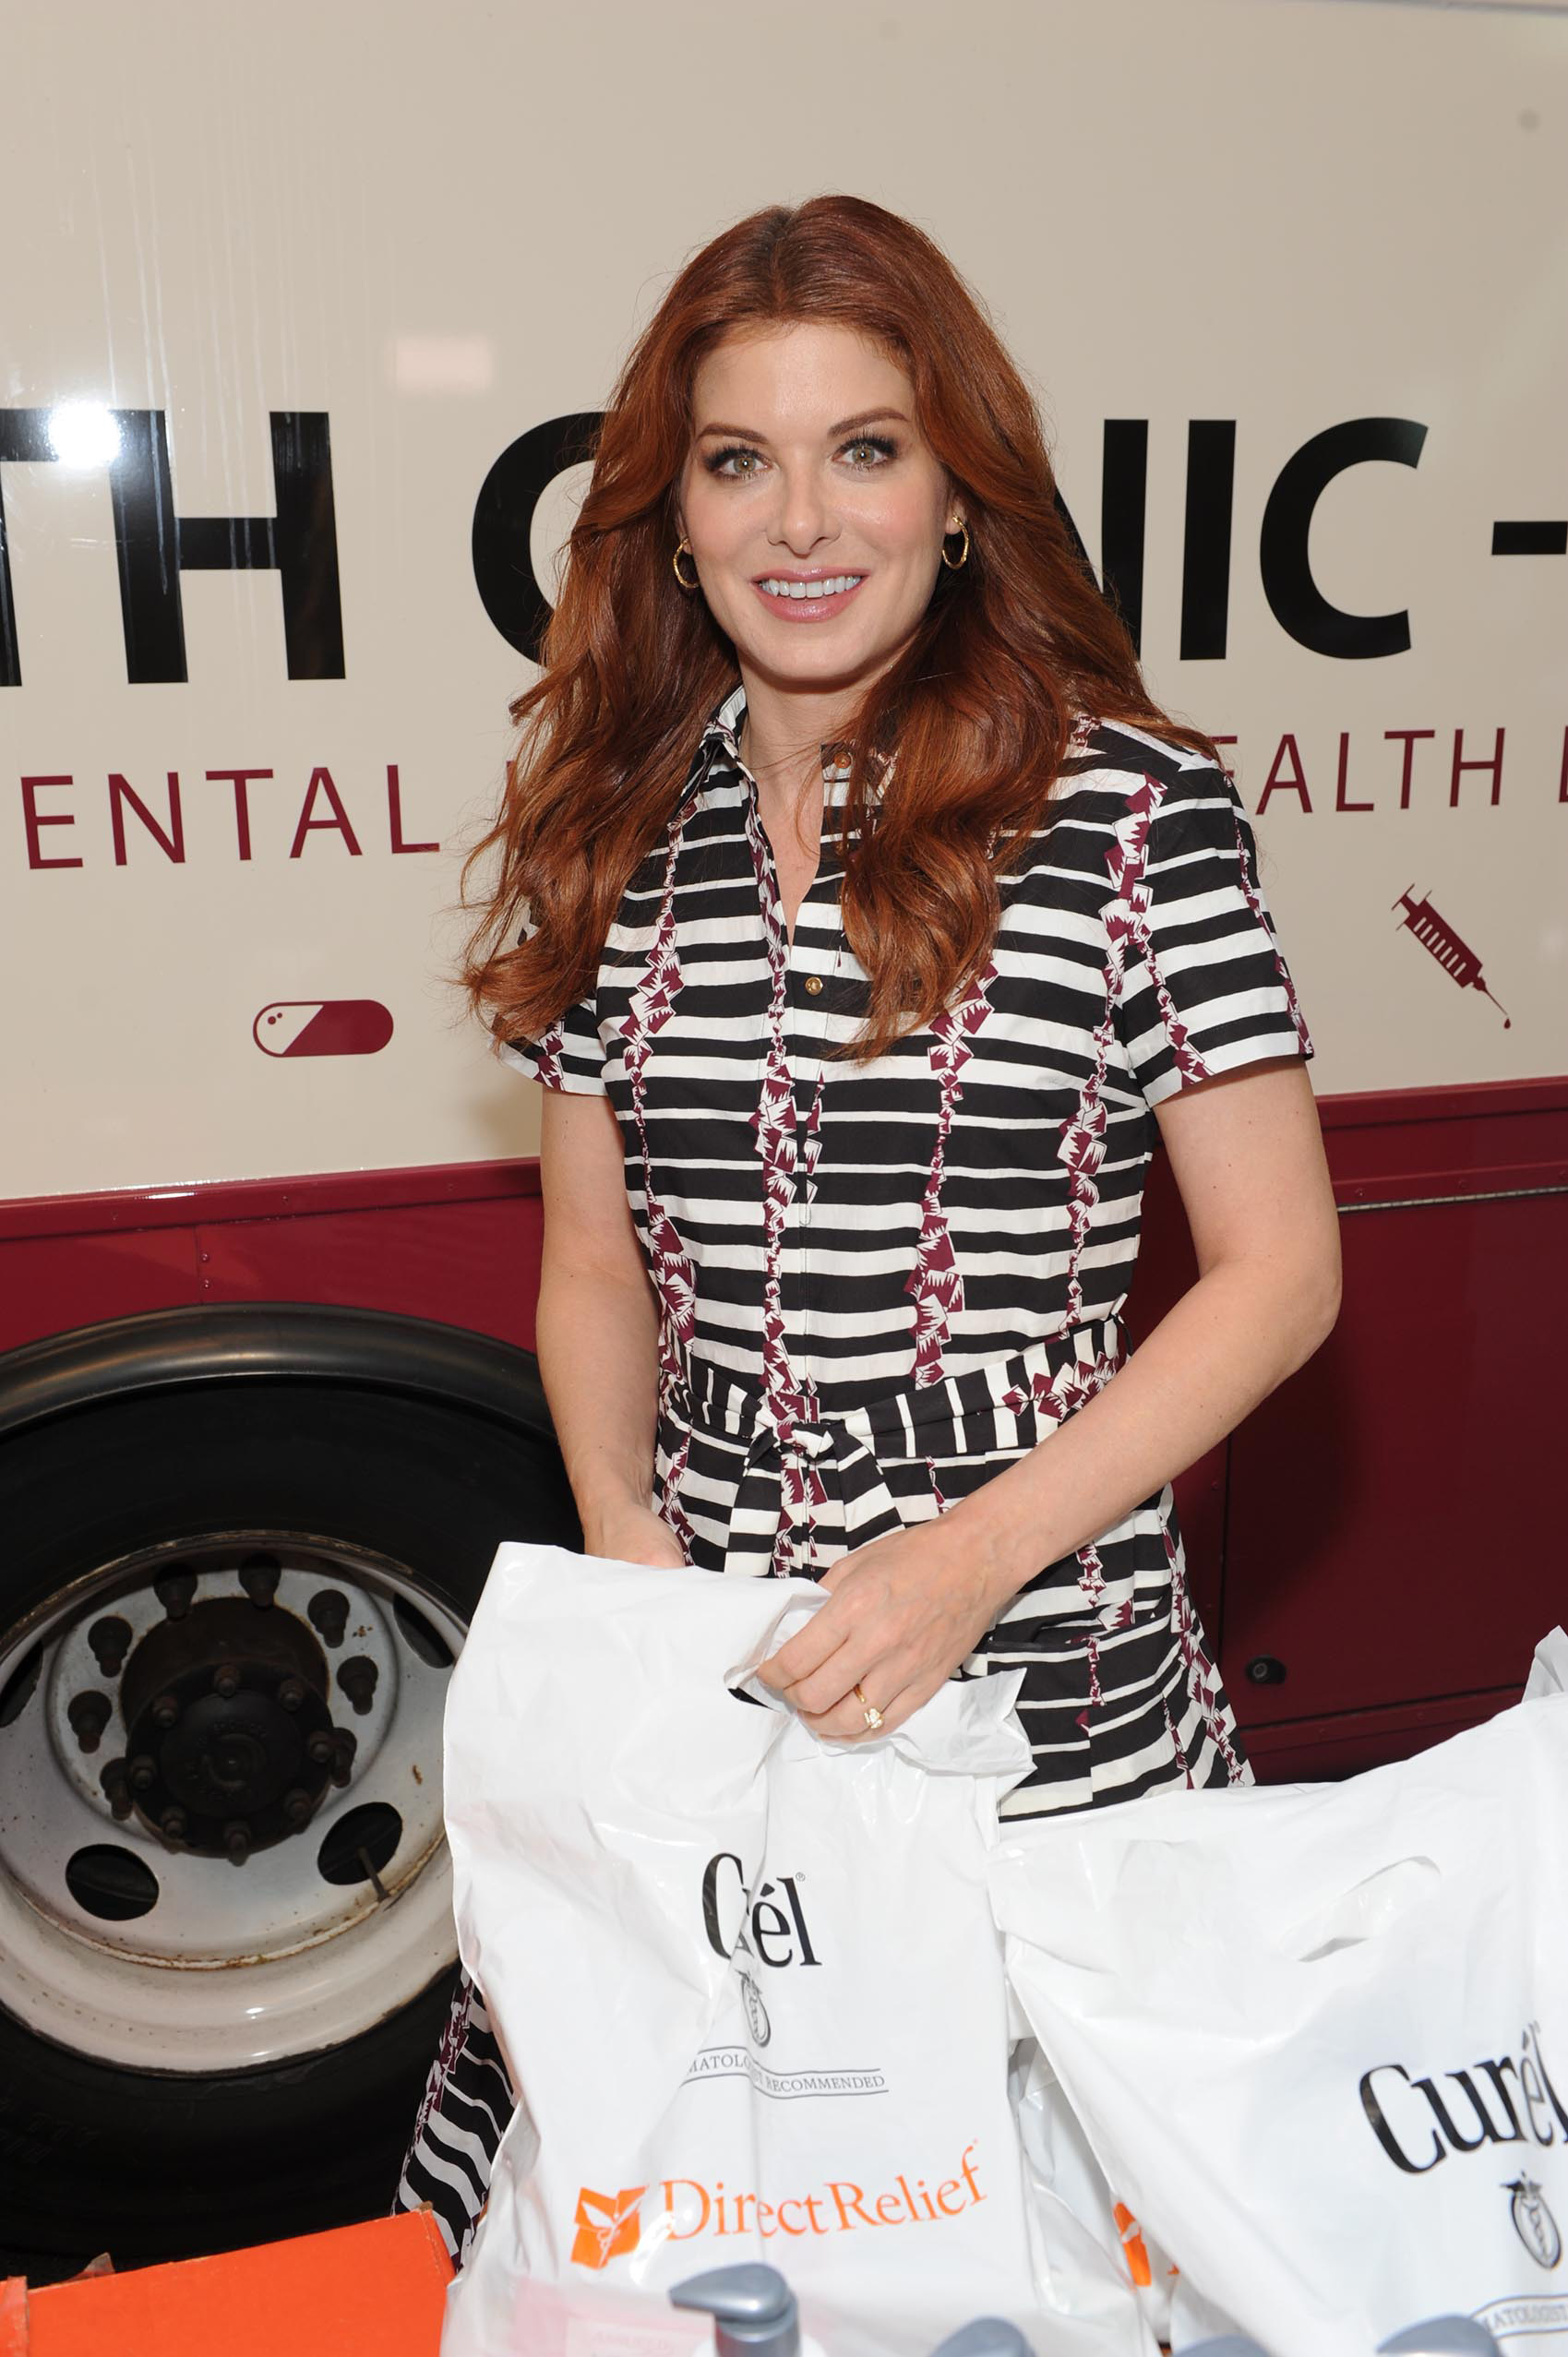 DEBRA MESSING TEAMS UP WITH CURÉL® SKINCARE TO SUPPORT DIRECT RELIEF®